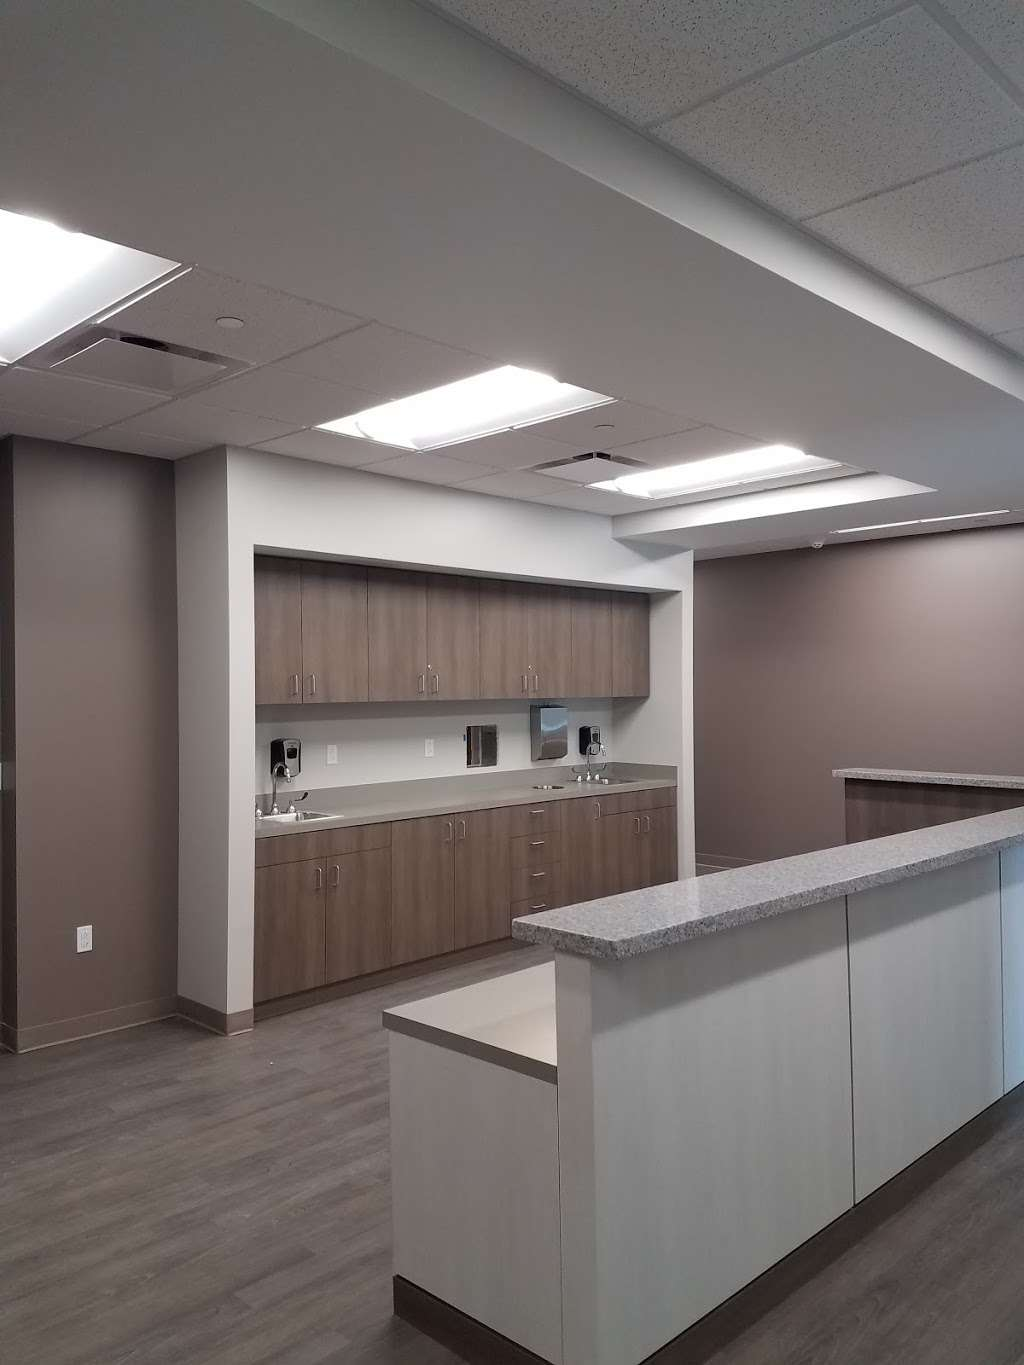 Texas Urgent Care & Imaging Center - health  | Photo 3 of 3 | Address: 17516 US-59 Suite 100, New Caney, TX 77357, USA | Phone: (832) 246-7250